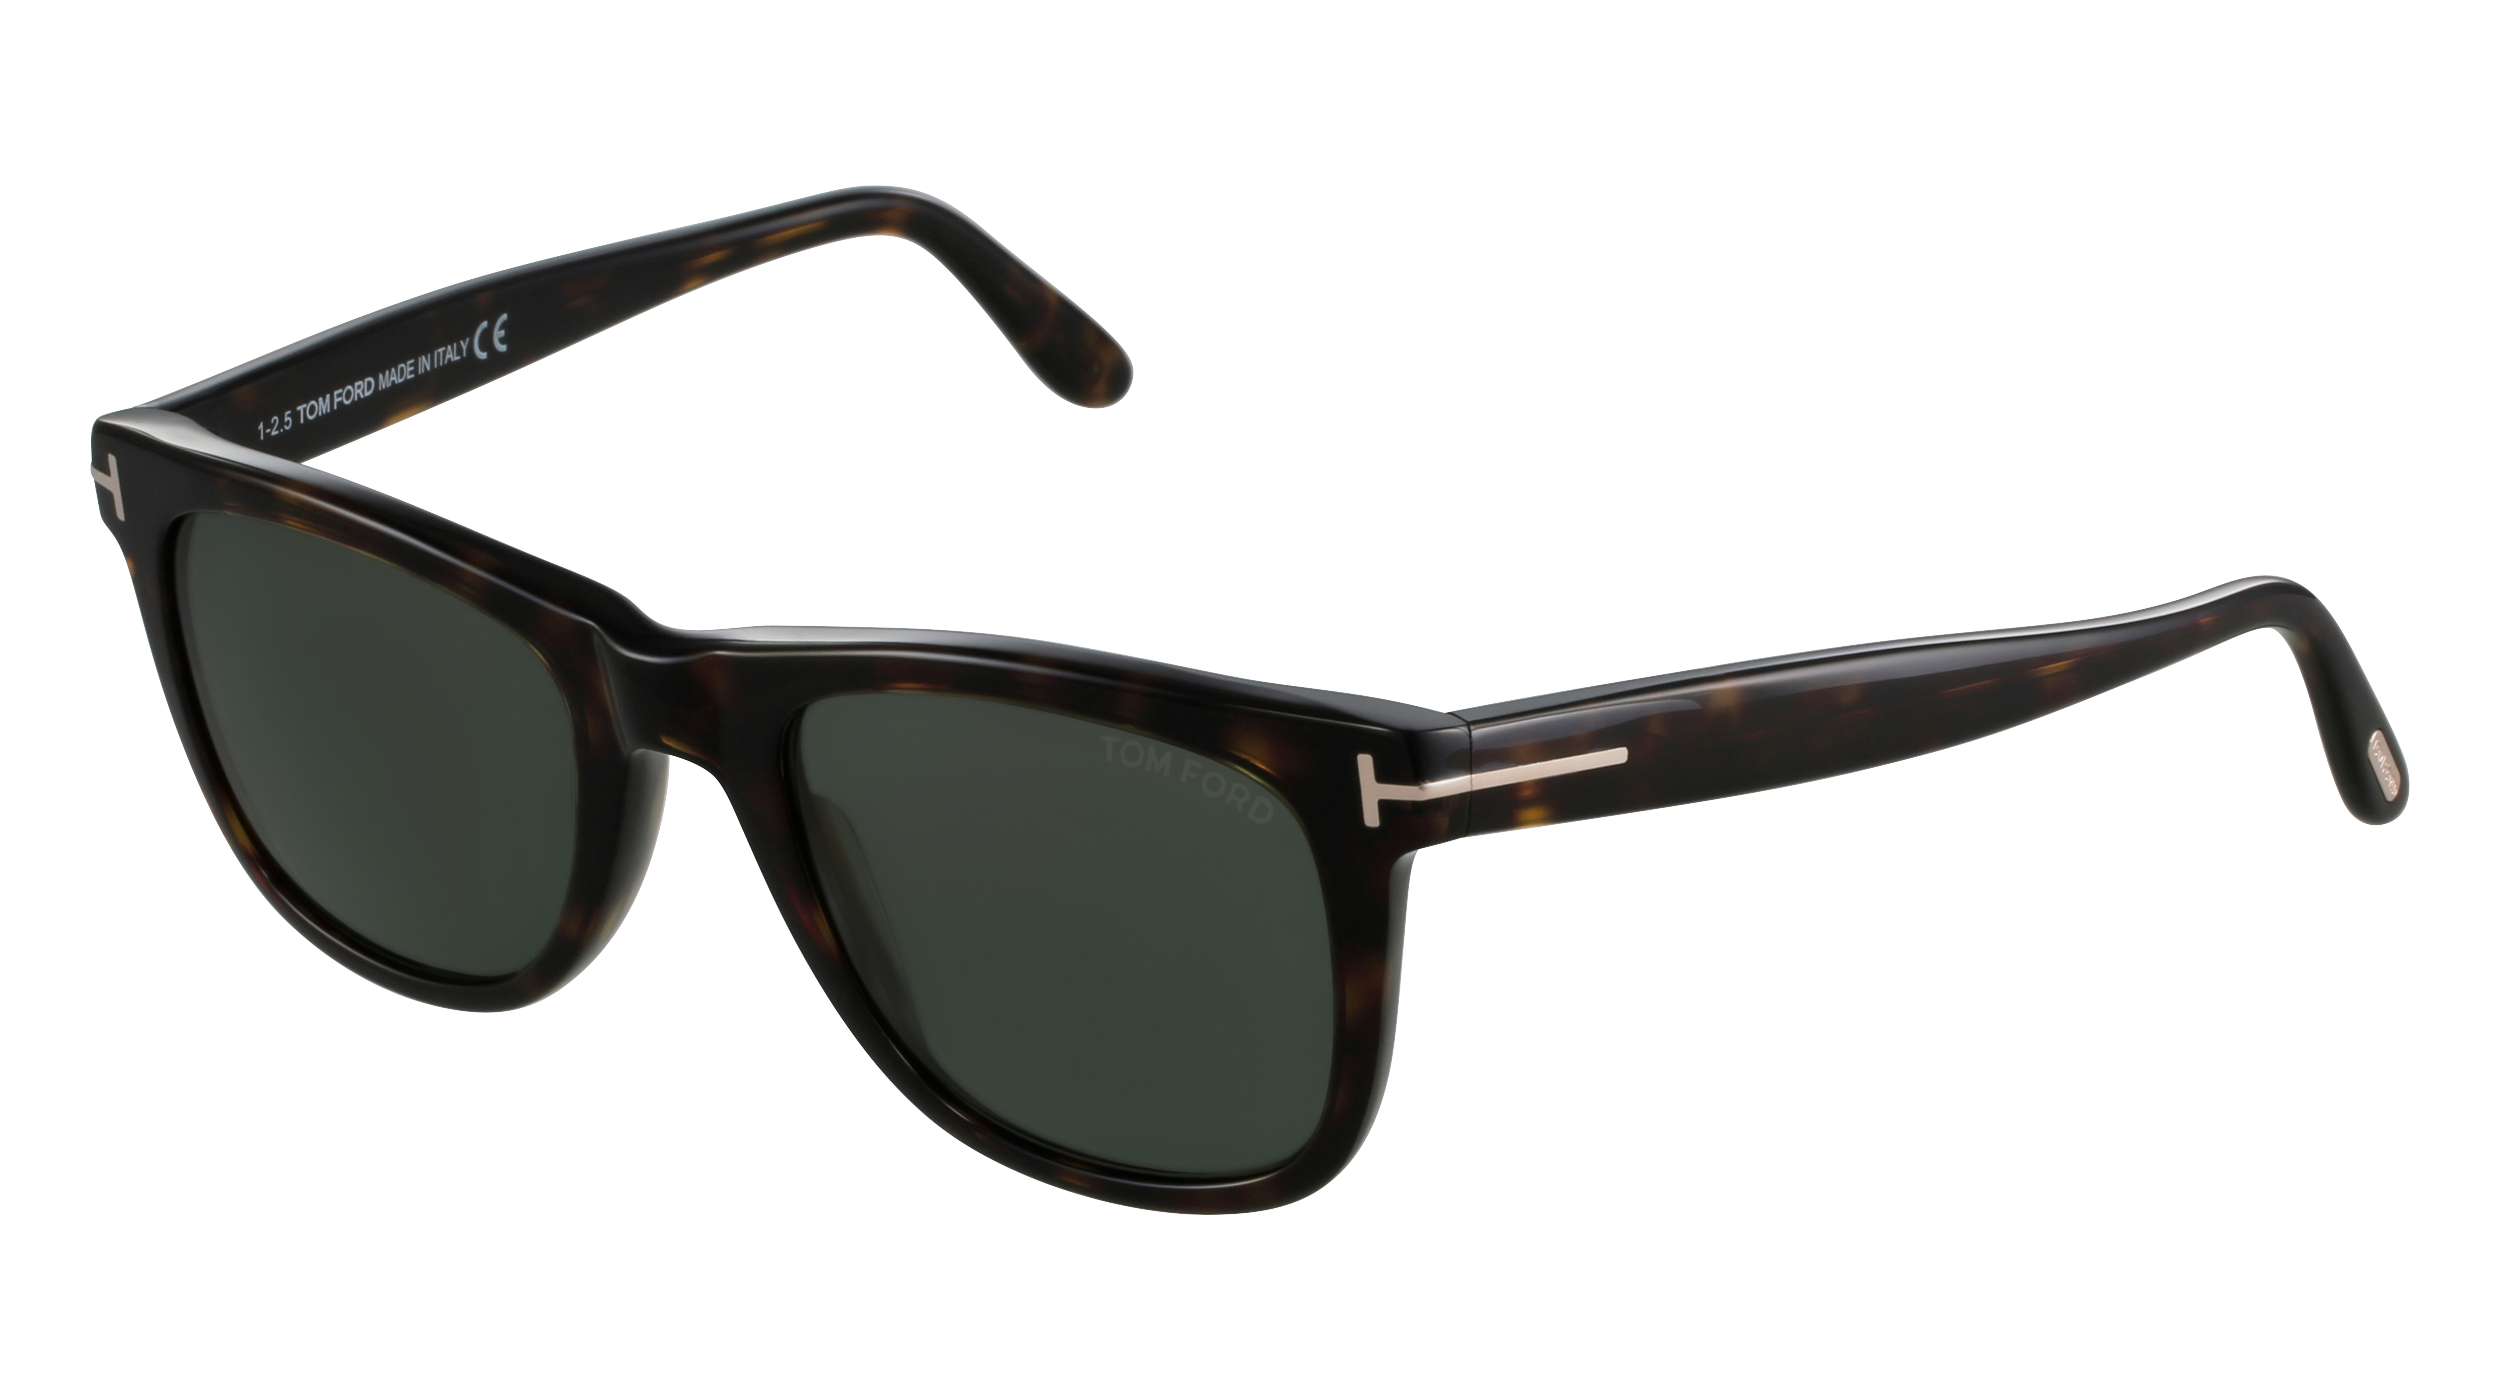 Tom Ford FT0336-S-56R-52-21-140